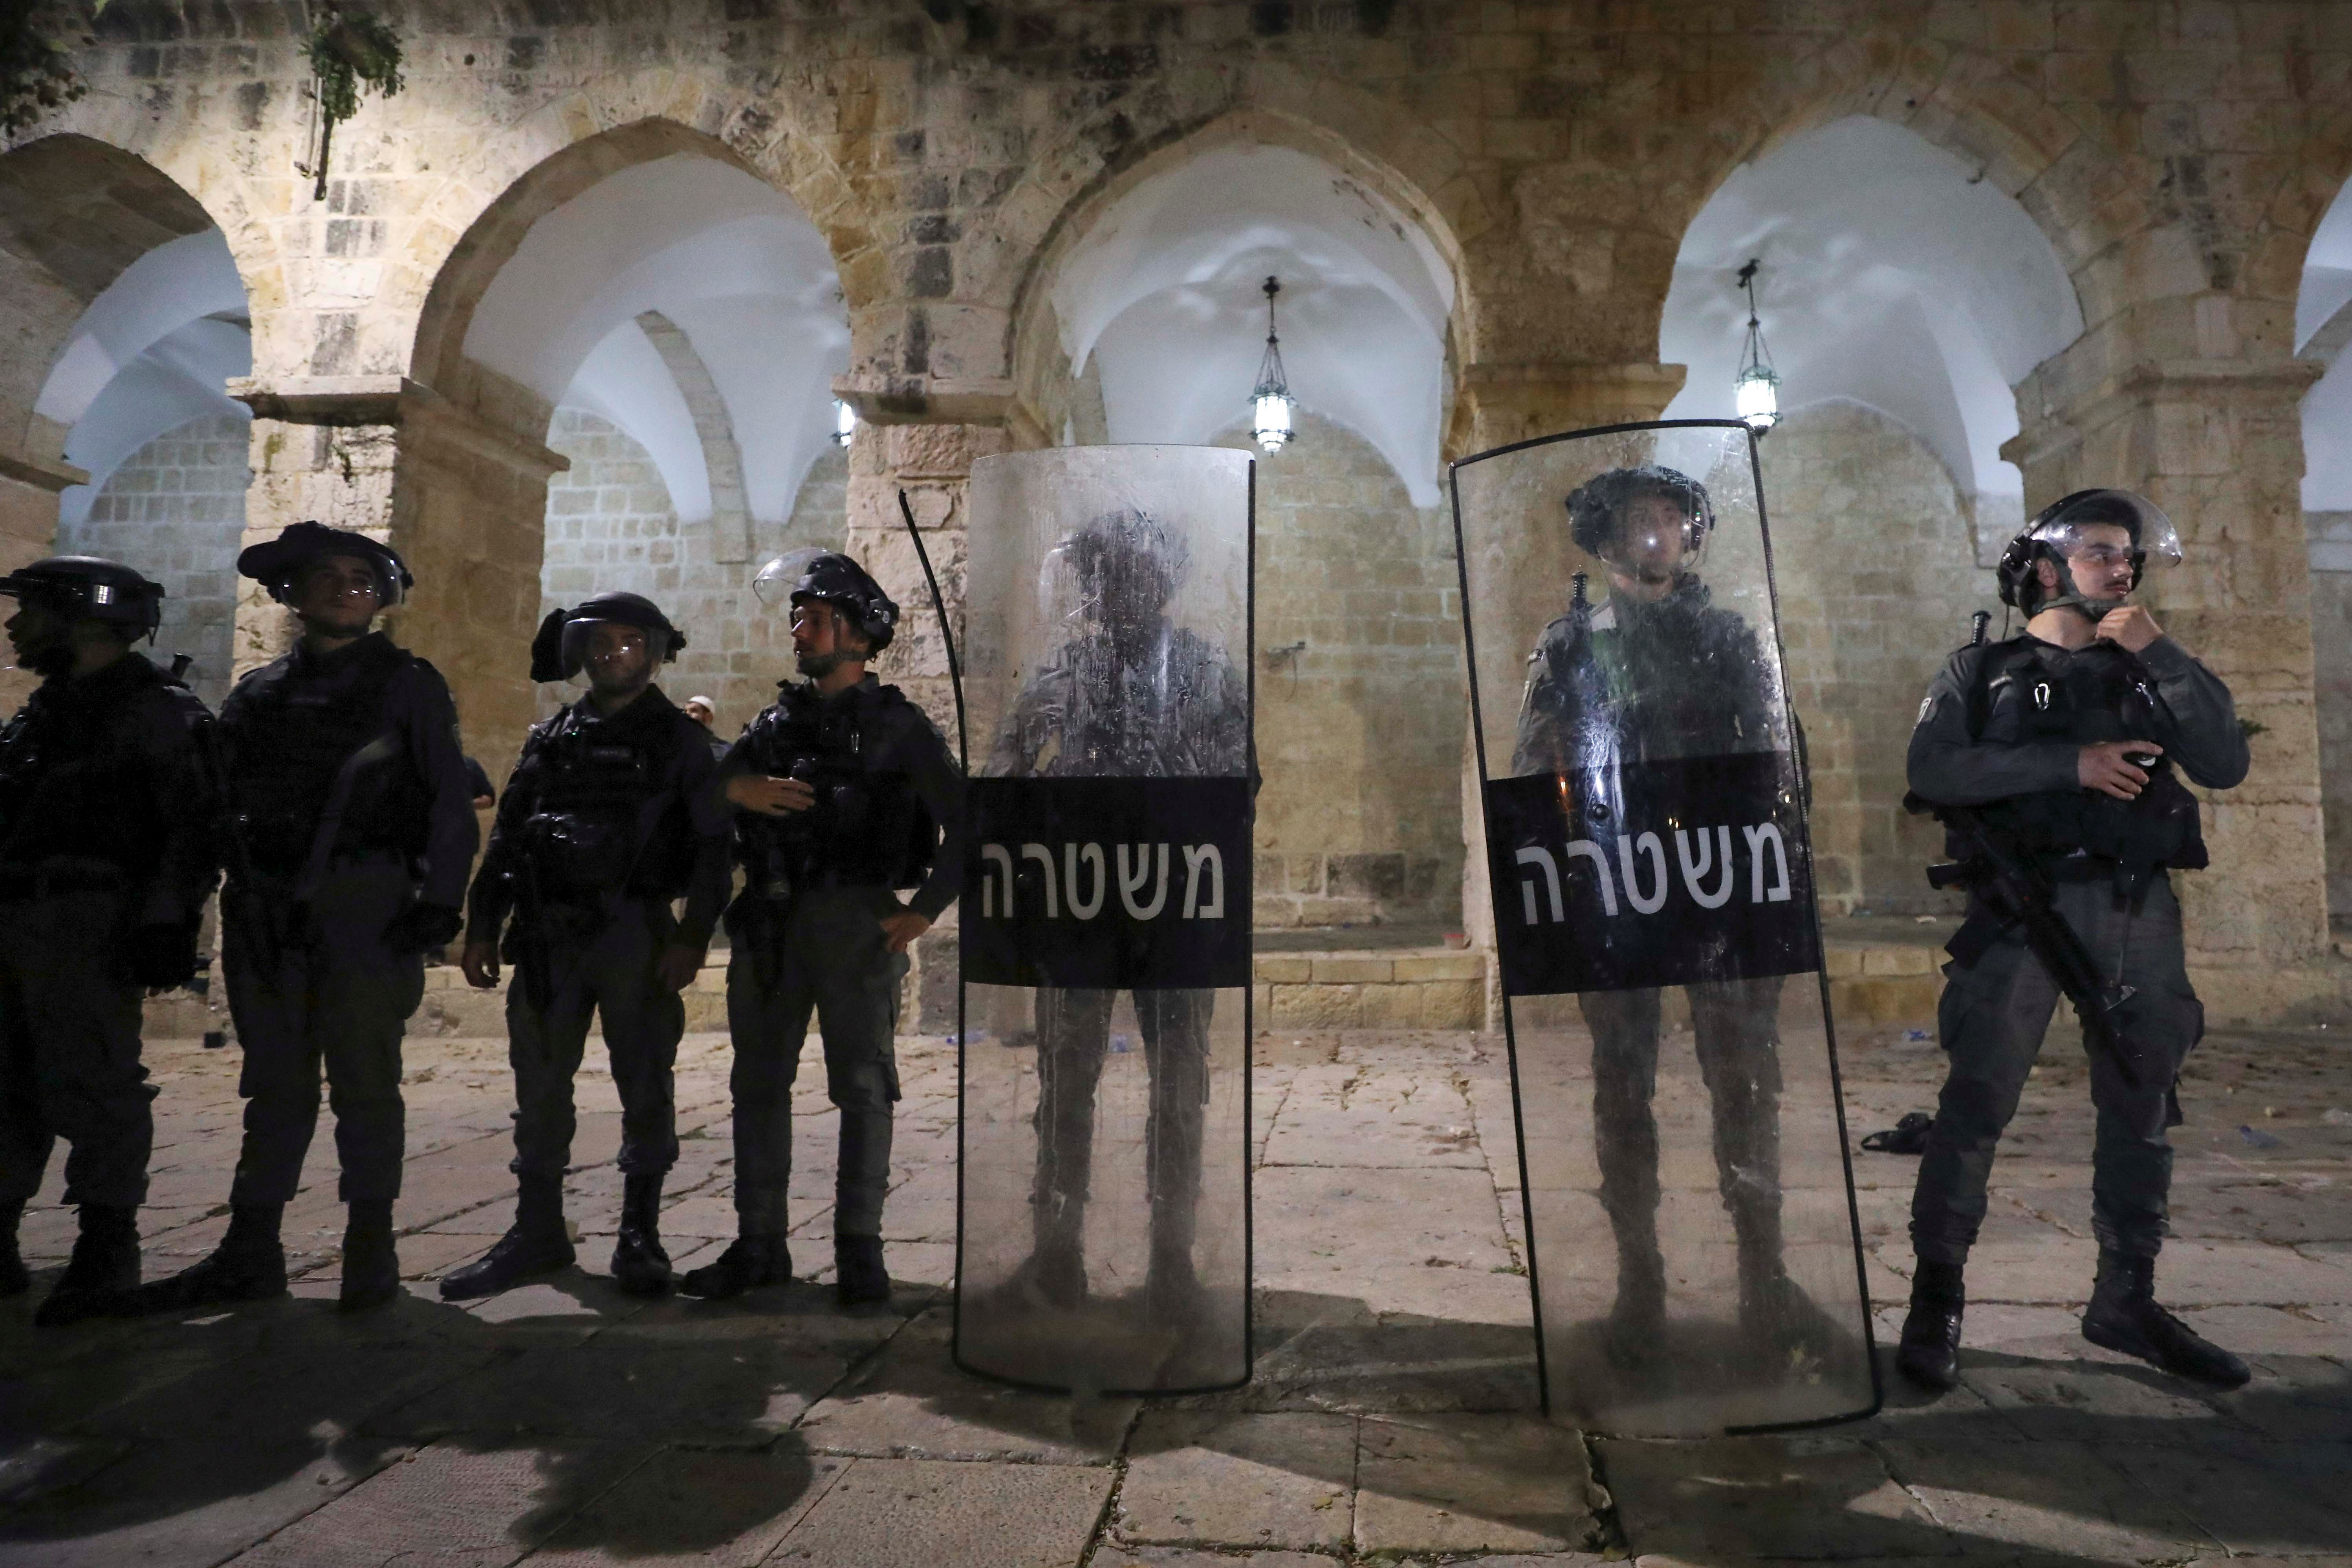 Israeli police keep guard during clashes with Palestinians at the compound that houses Al-Aqsa Mosque, known to Muslims as Noble Sanctuary and to Jews as Temple Mount, amid tension over the possible eviction of several Palestinian families from homes on land claimed by Jewish settlers in the Sheikh Jarrah neighbourhood, in Jerusalem's Old City, May 7, 2021. REUTERS/Ammar Awad